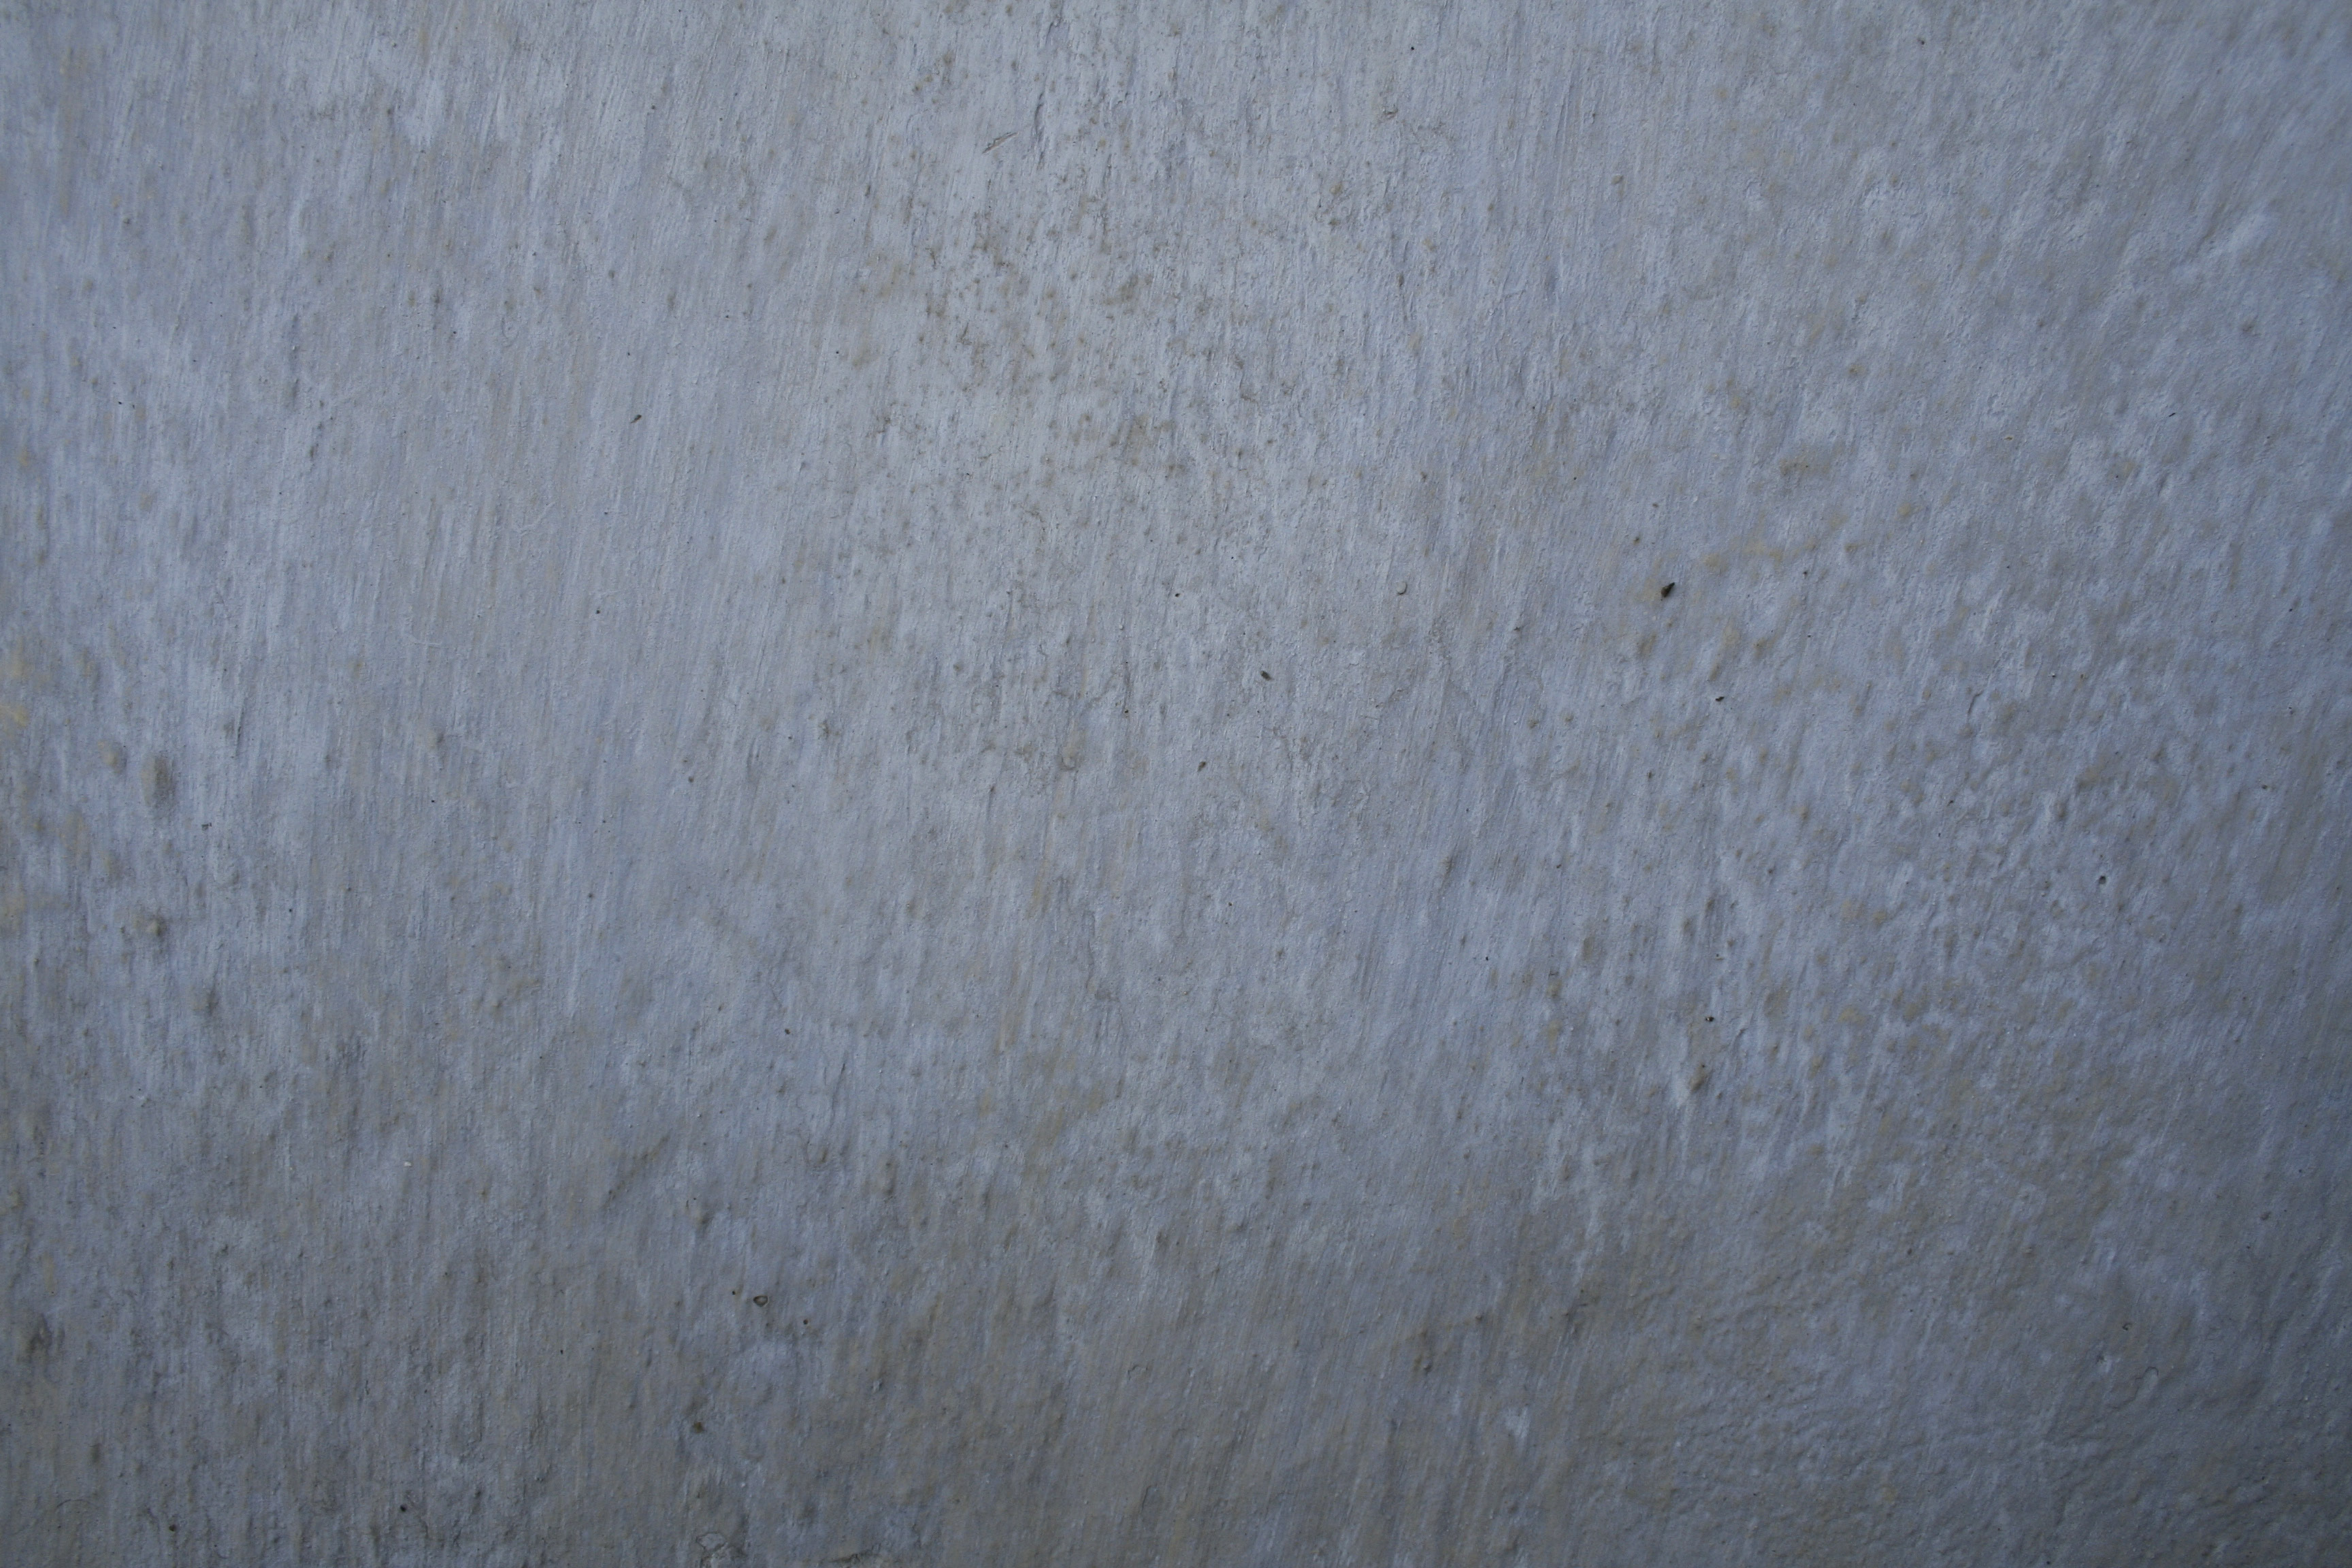 Dirty Grey Wall Texture Textures For Photoshop Free